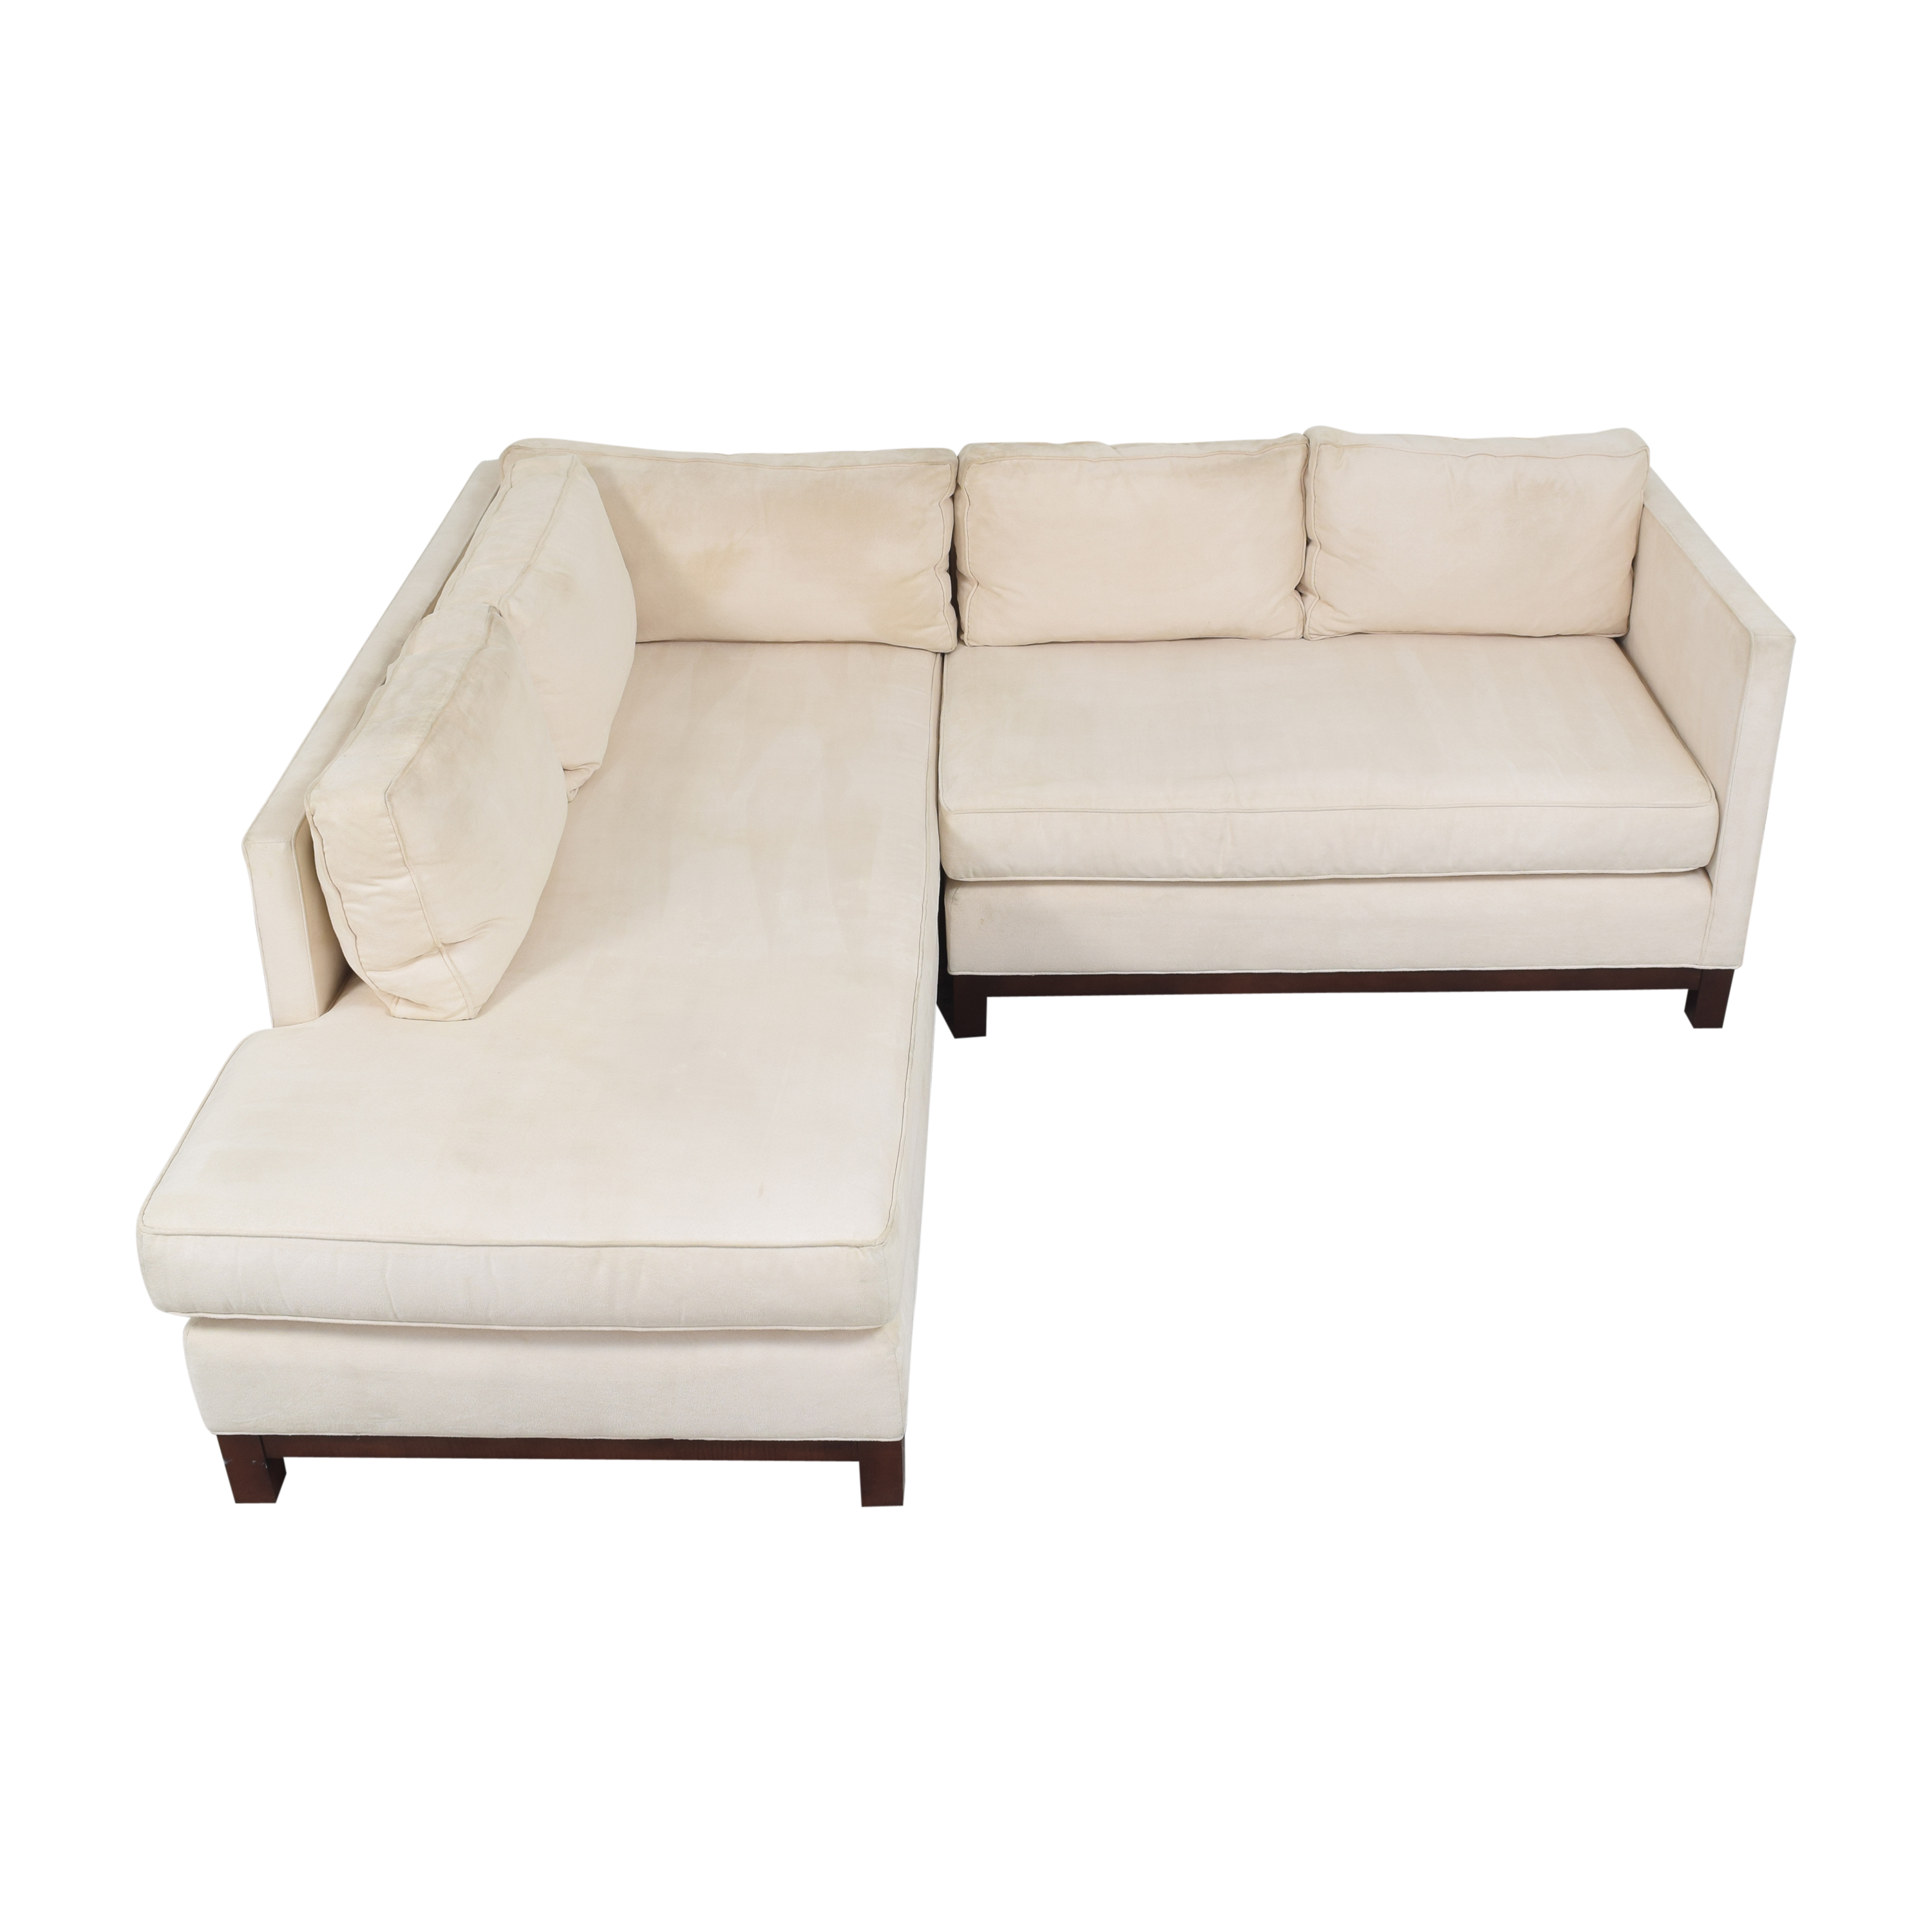 buy Mitchell Gold + Bob Williams Mitchell Gold + Bob Williams Clifton Chaise Sectional Sofa online